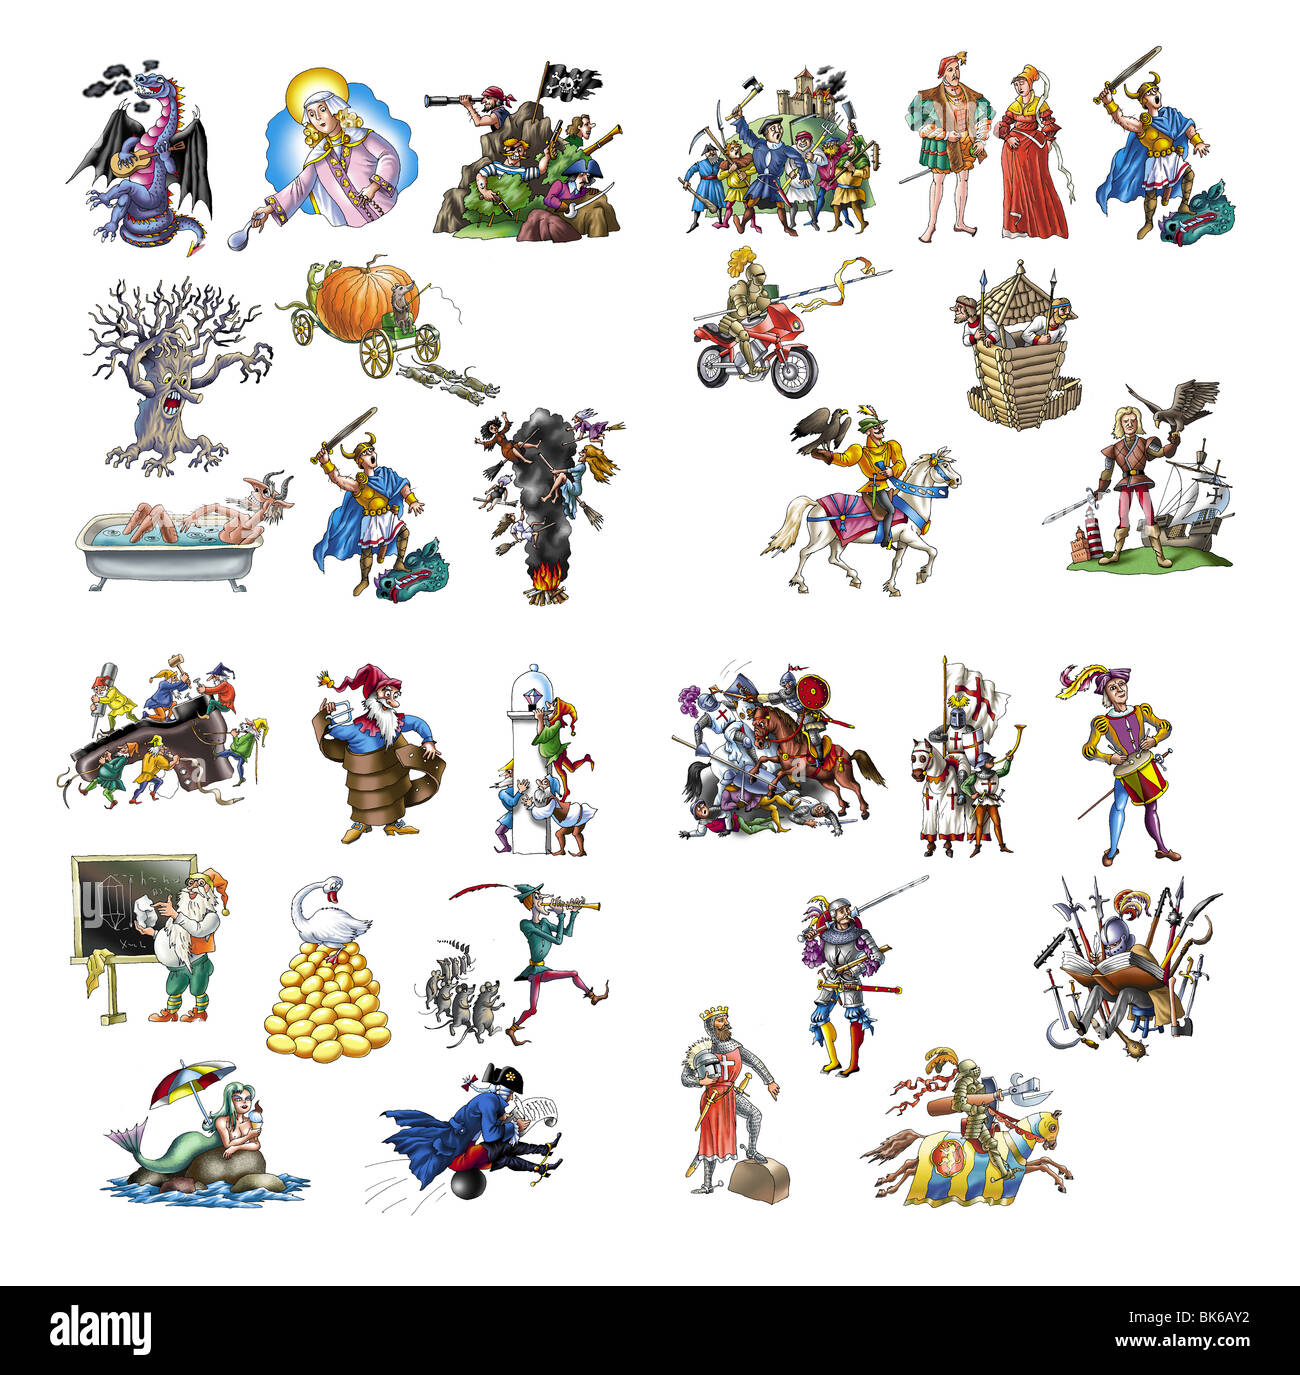 Legends and fairy tales_2 - Stock Image